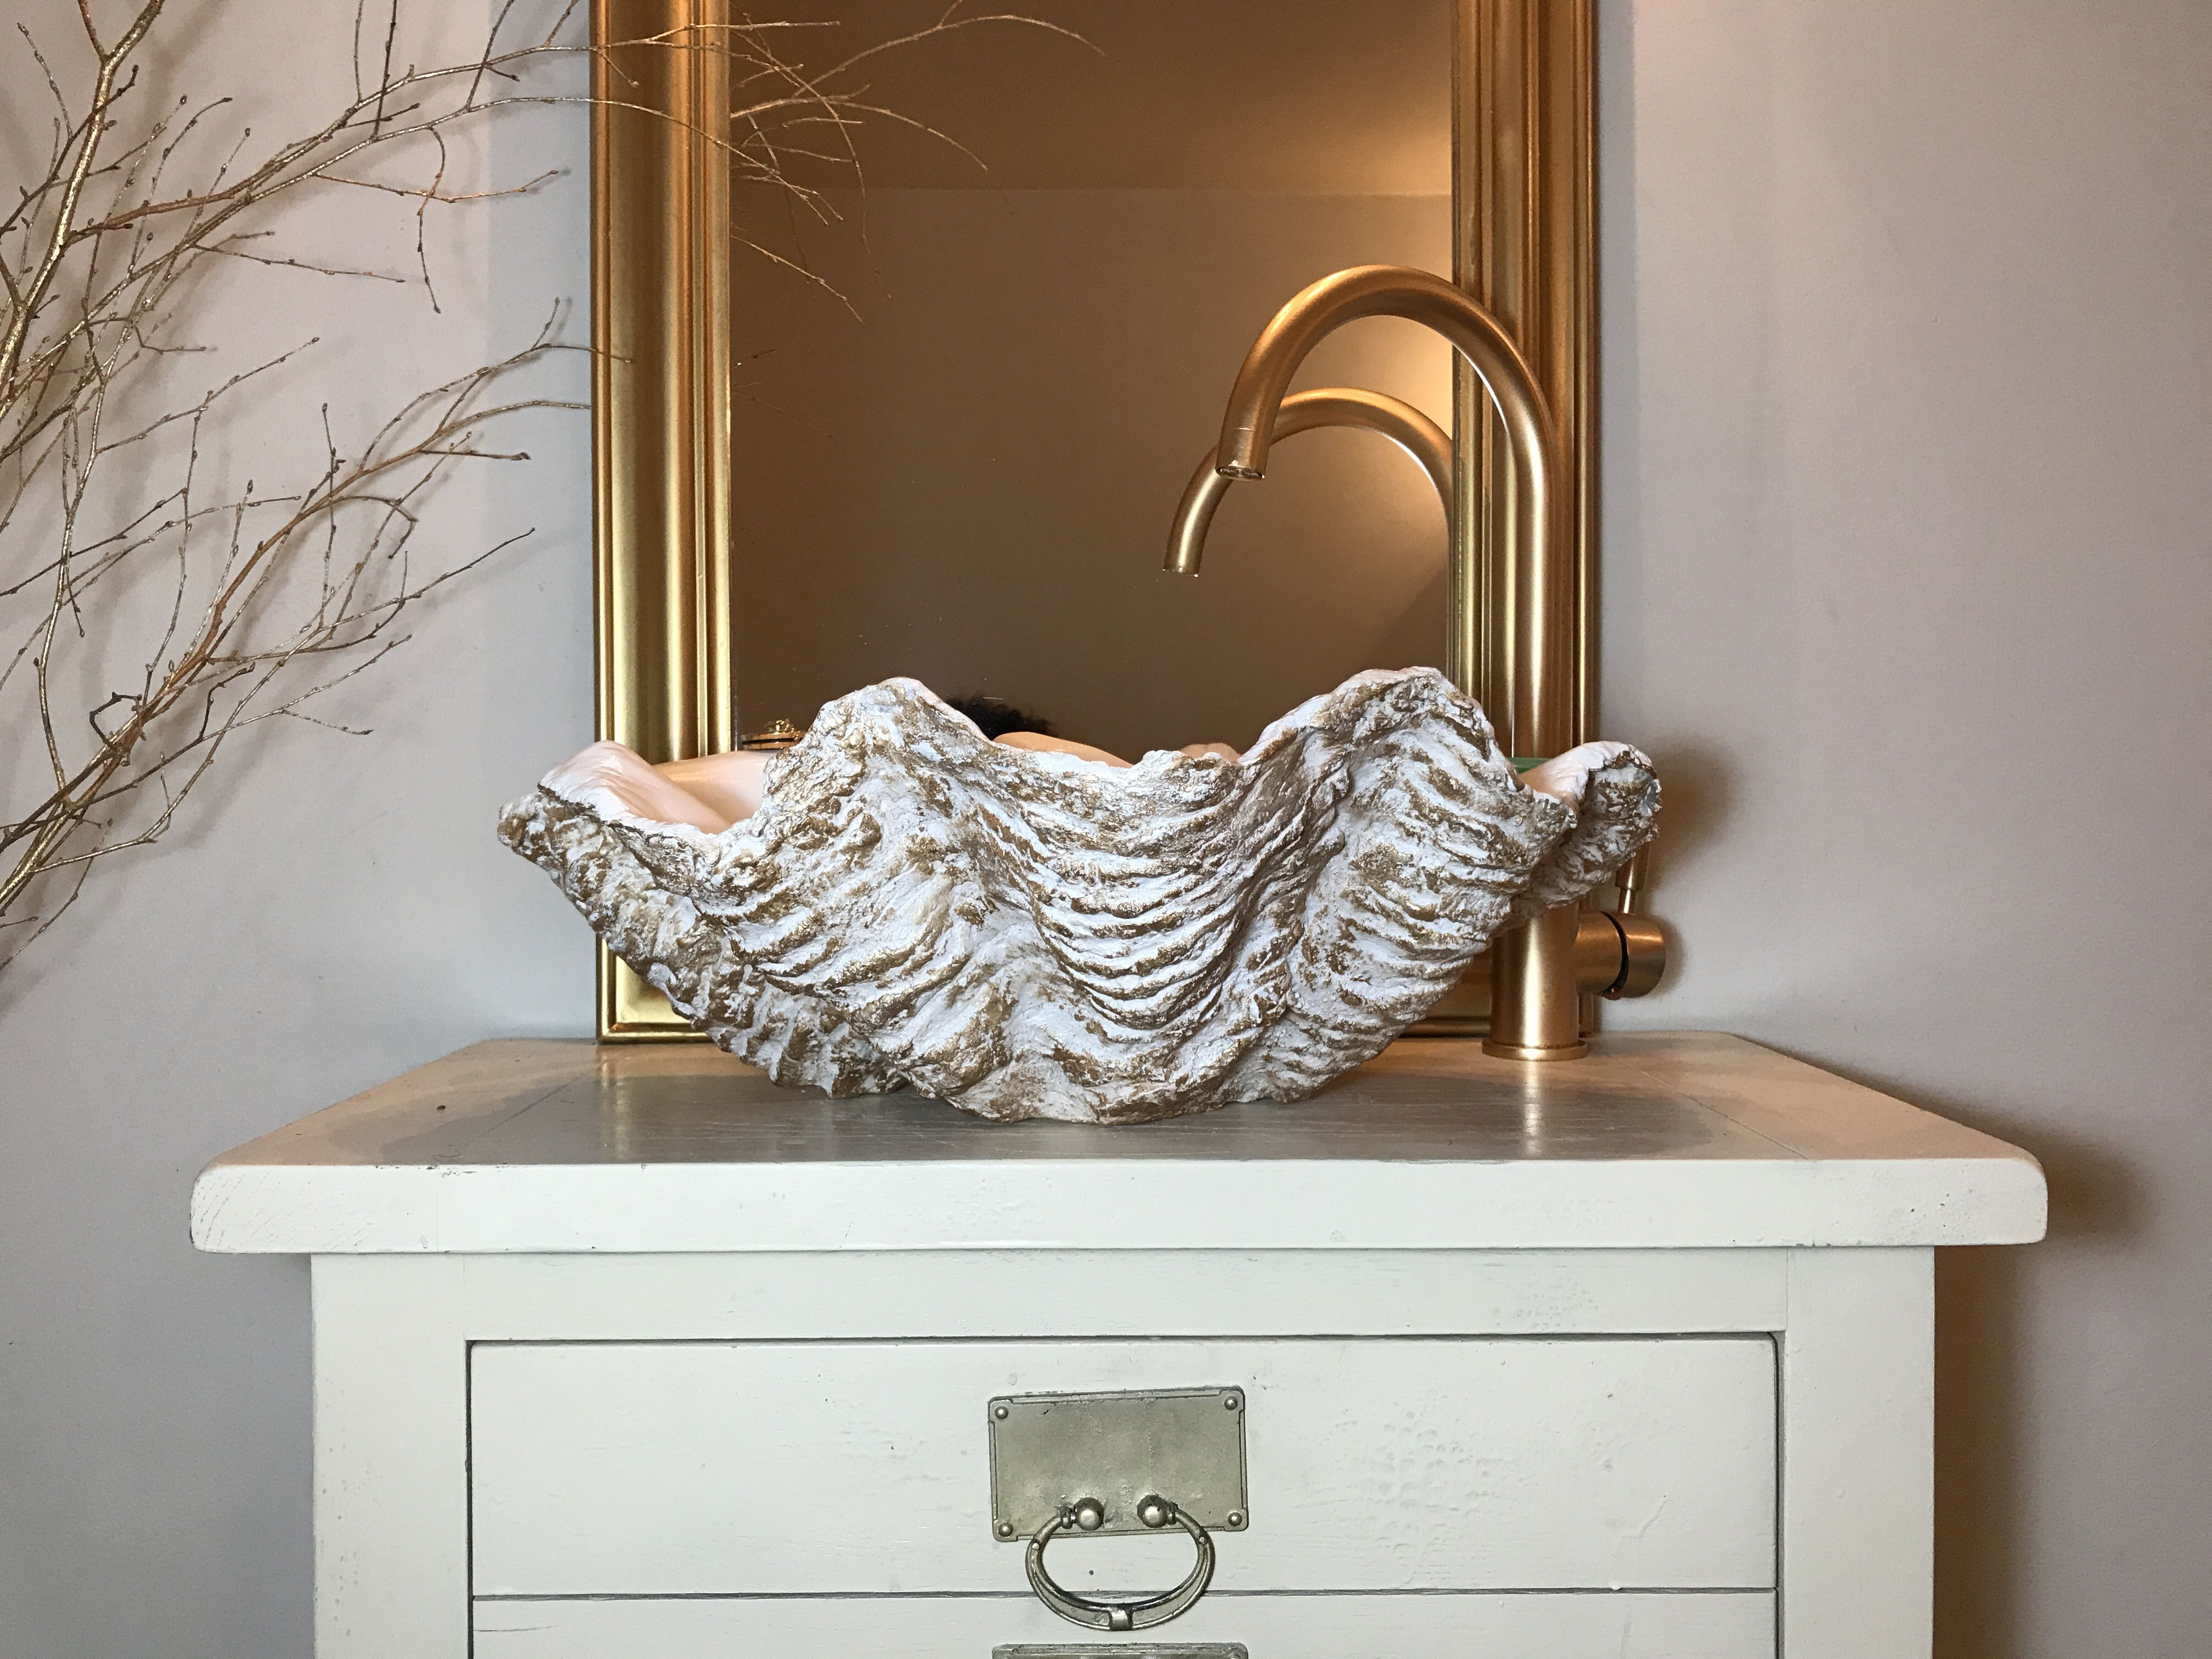 This Our Newest Giant Clam Shell Sink Basin The Baby Of The